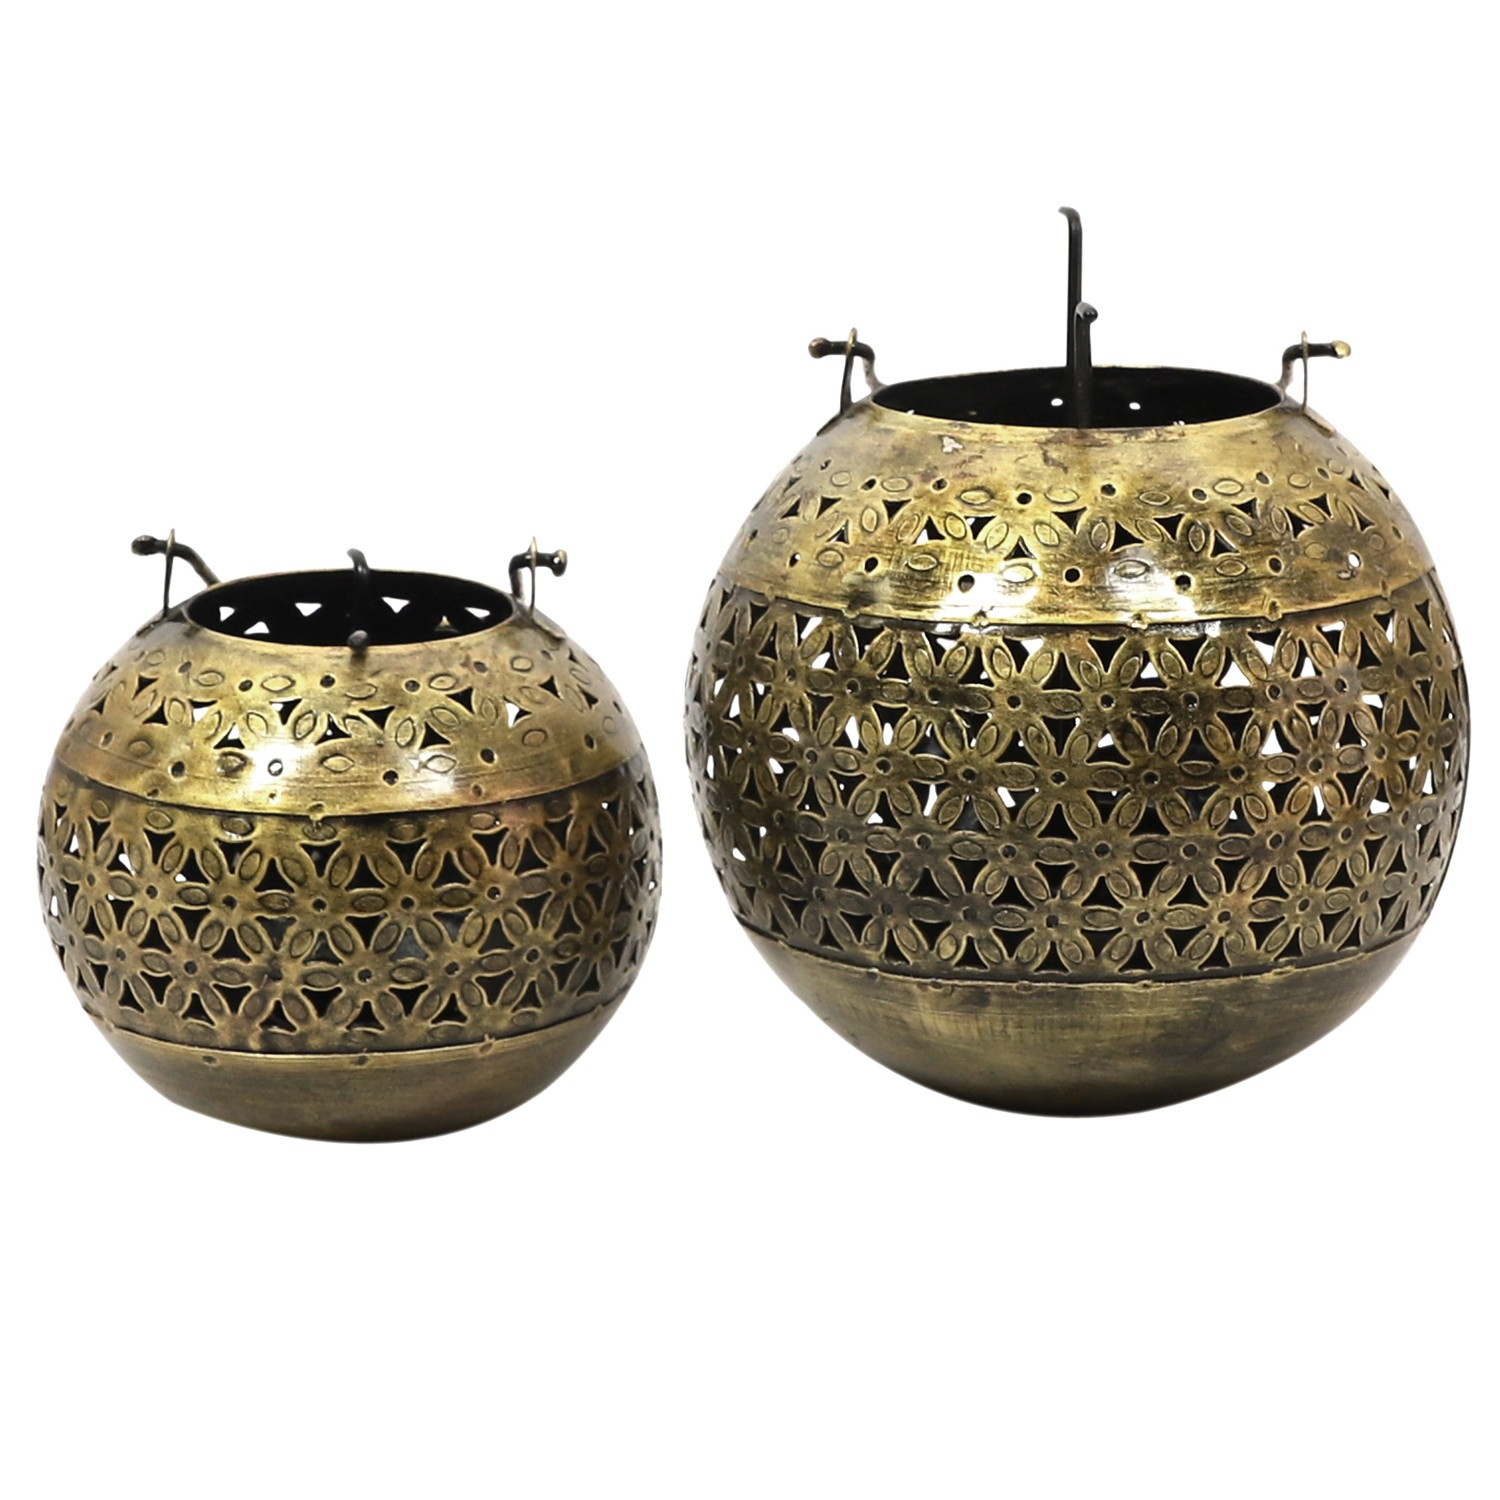 Redon 2 Piece Metal Cut Out Tealight Holder Set